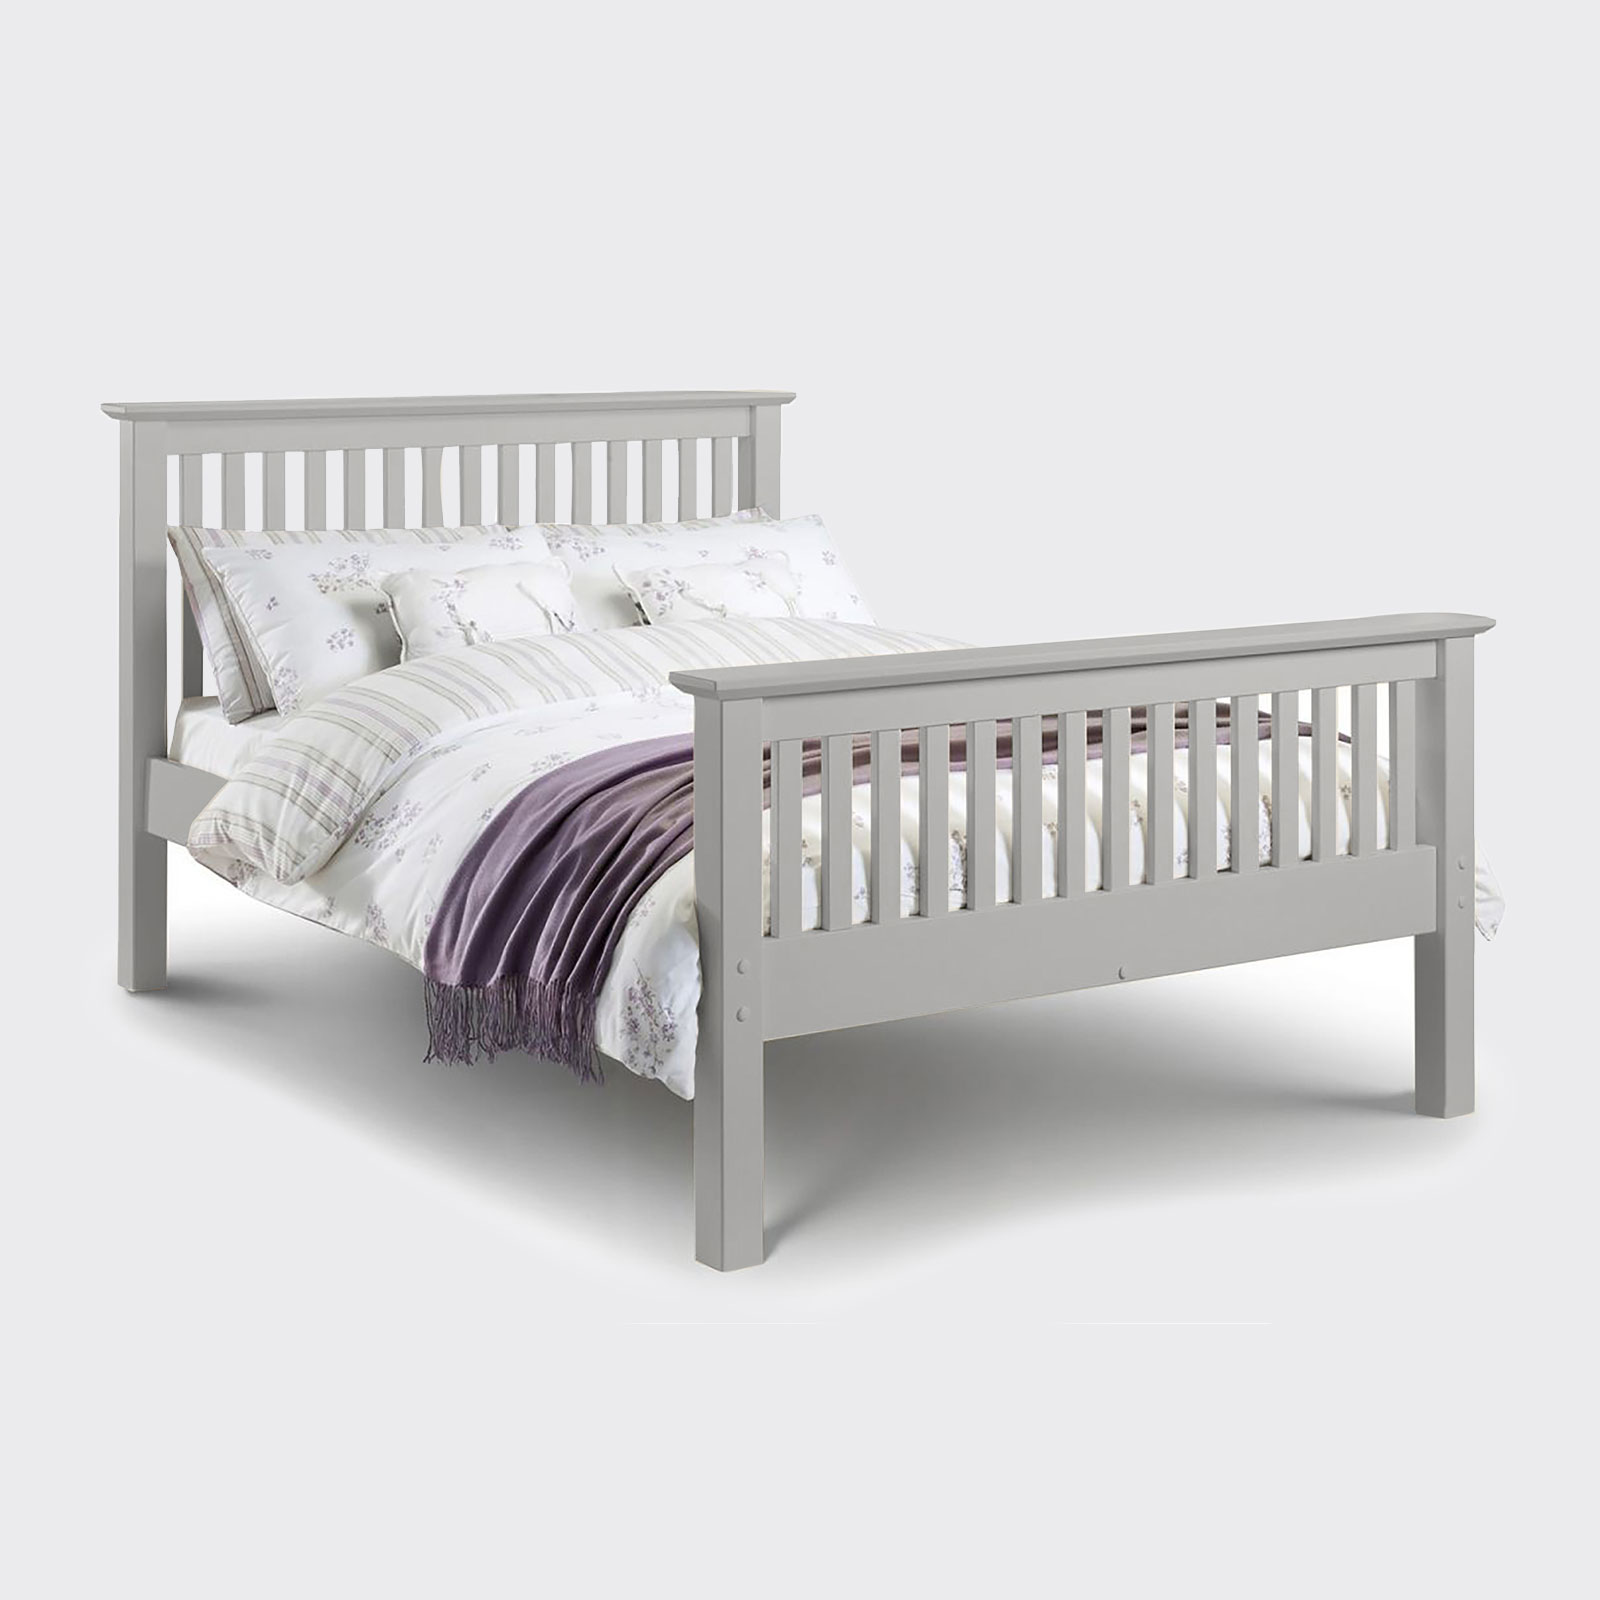 Barcelona dove grey high foot end bed including mattress